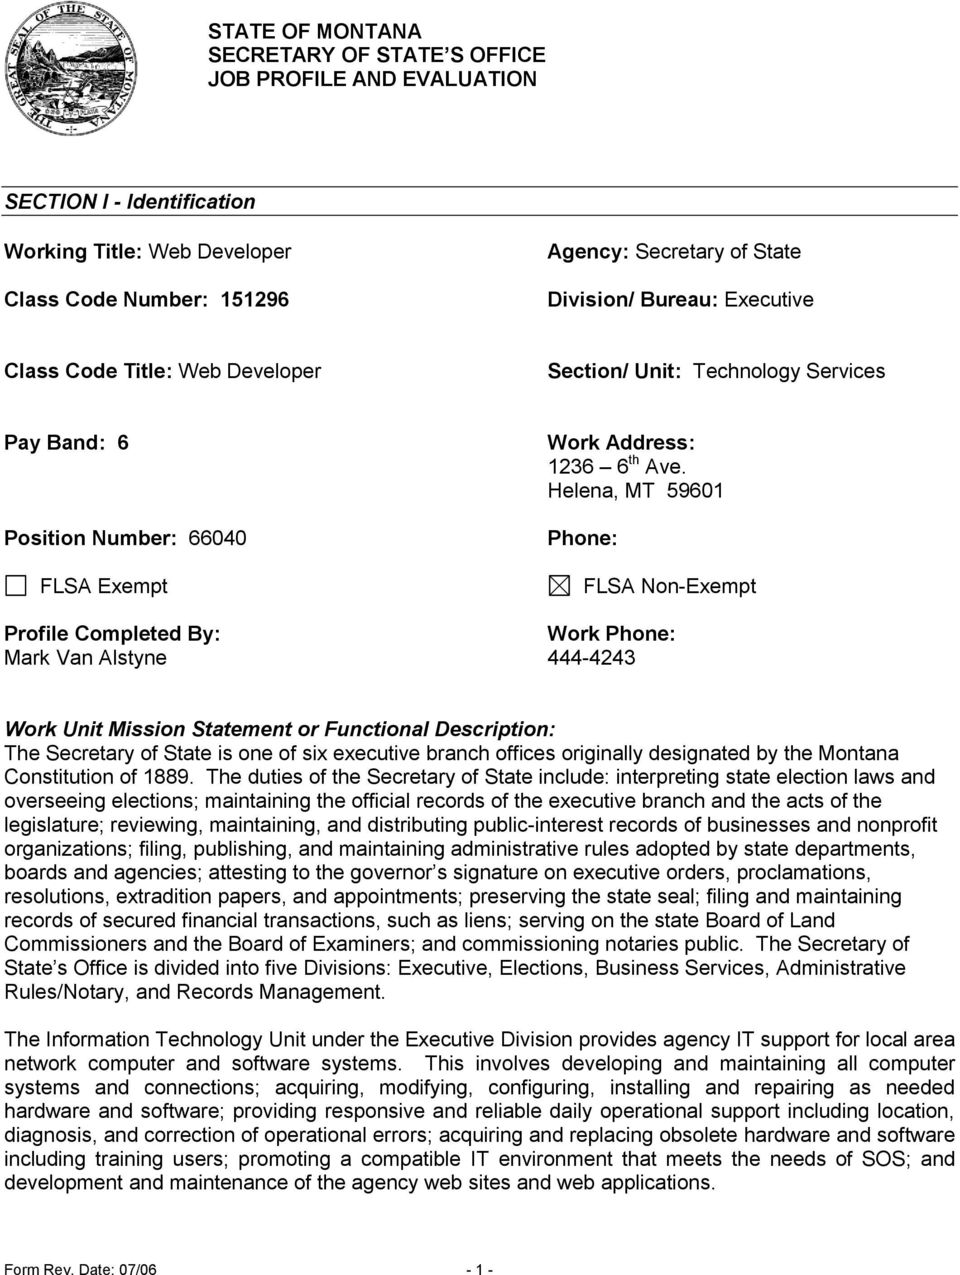 Helena, MT 59601 Phone: FLSA Non-Exempt Profile Completed By: Work Phone: Mark Van Alstyne 444-4243 Work Unit Mission Statement or Functional Description: The Secretary of State is one of six